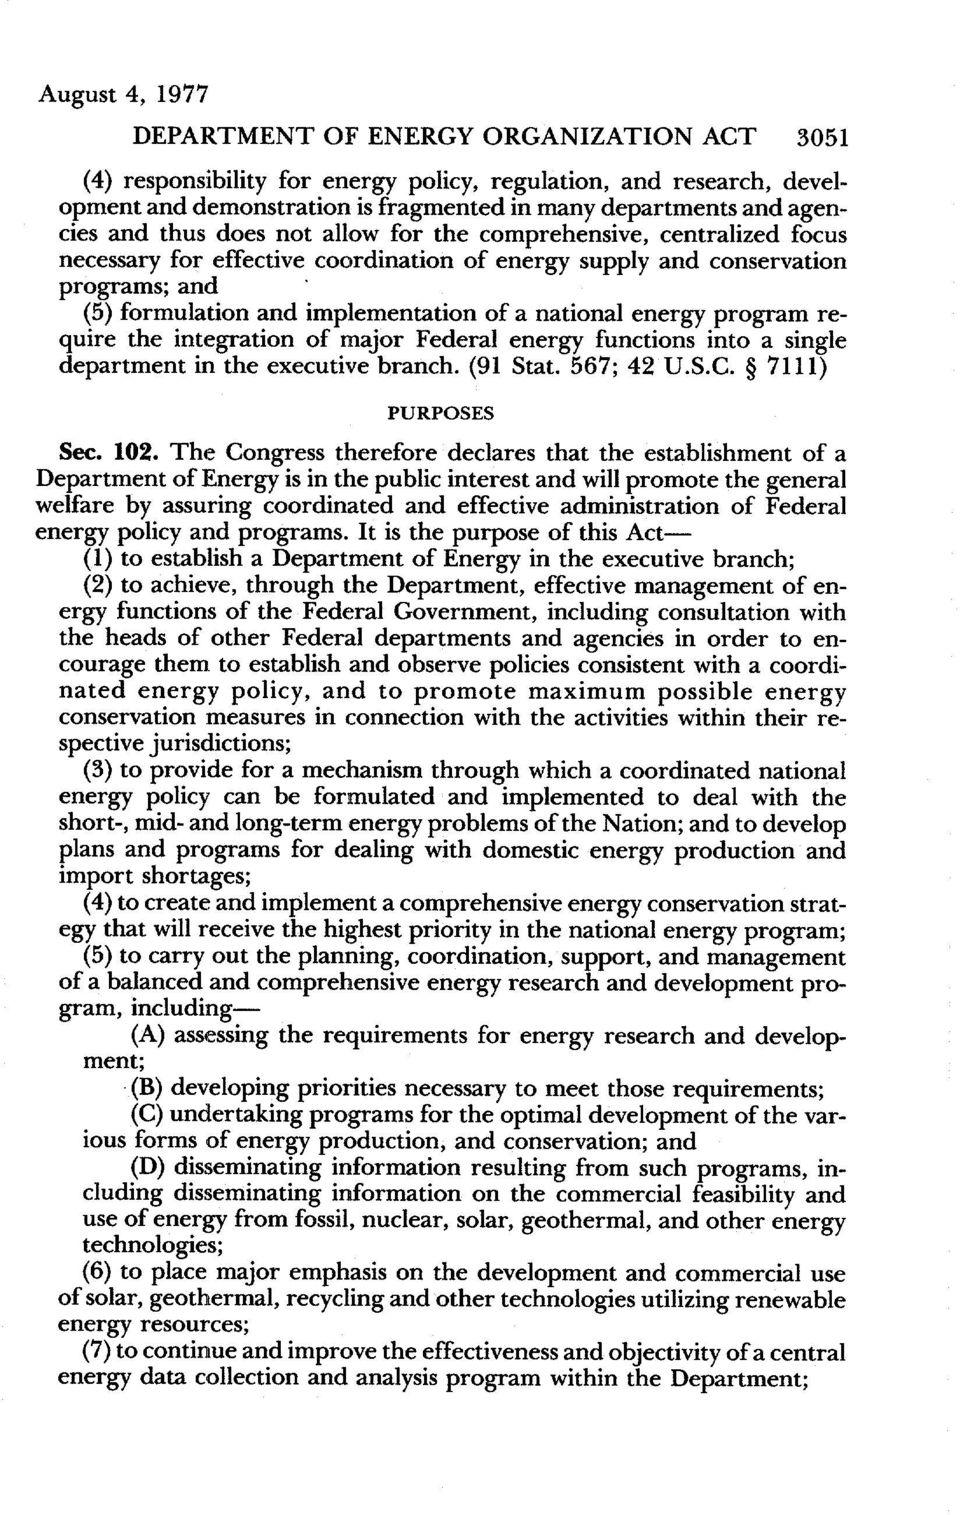 energy program require tie integration of major Federal energy functions into a single department in the executive branch. (91 Stat. 567; 42 U.S.C. $71 11) PURPOSES Sec. 102.